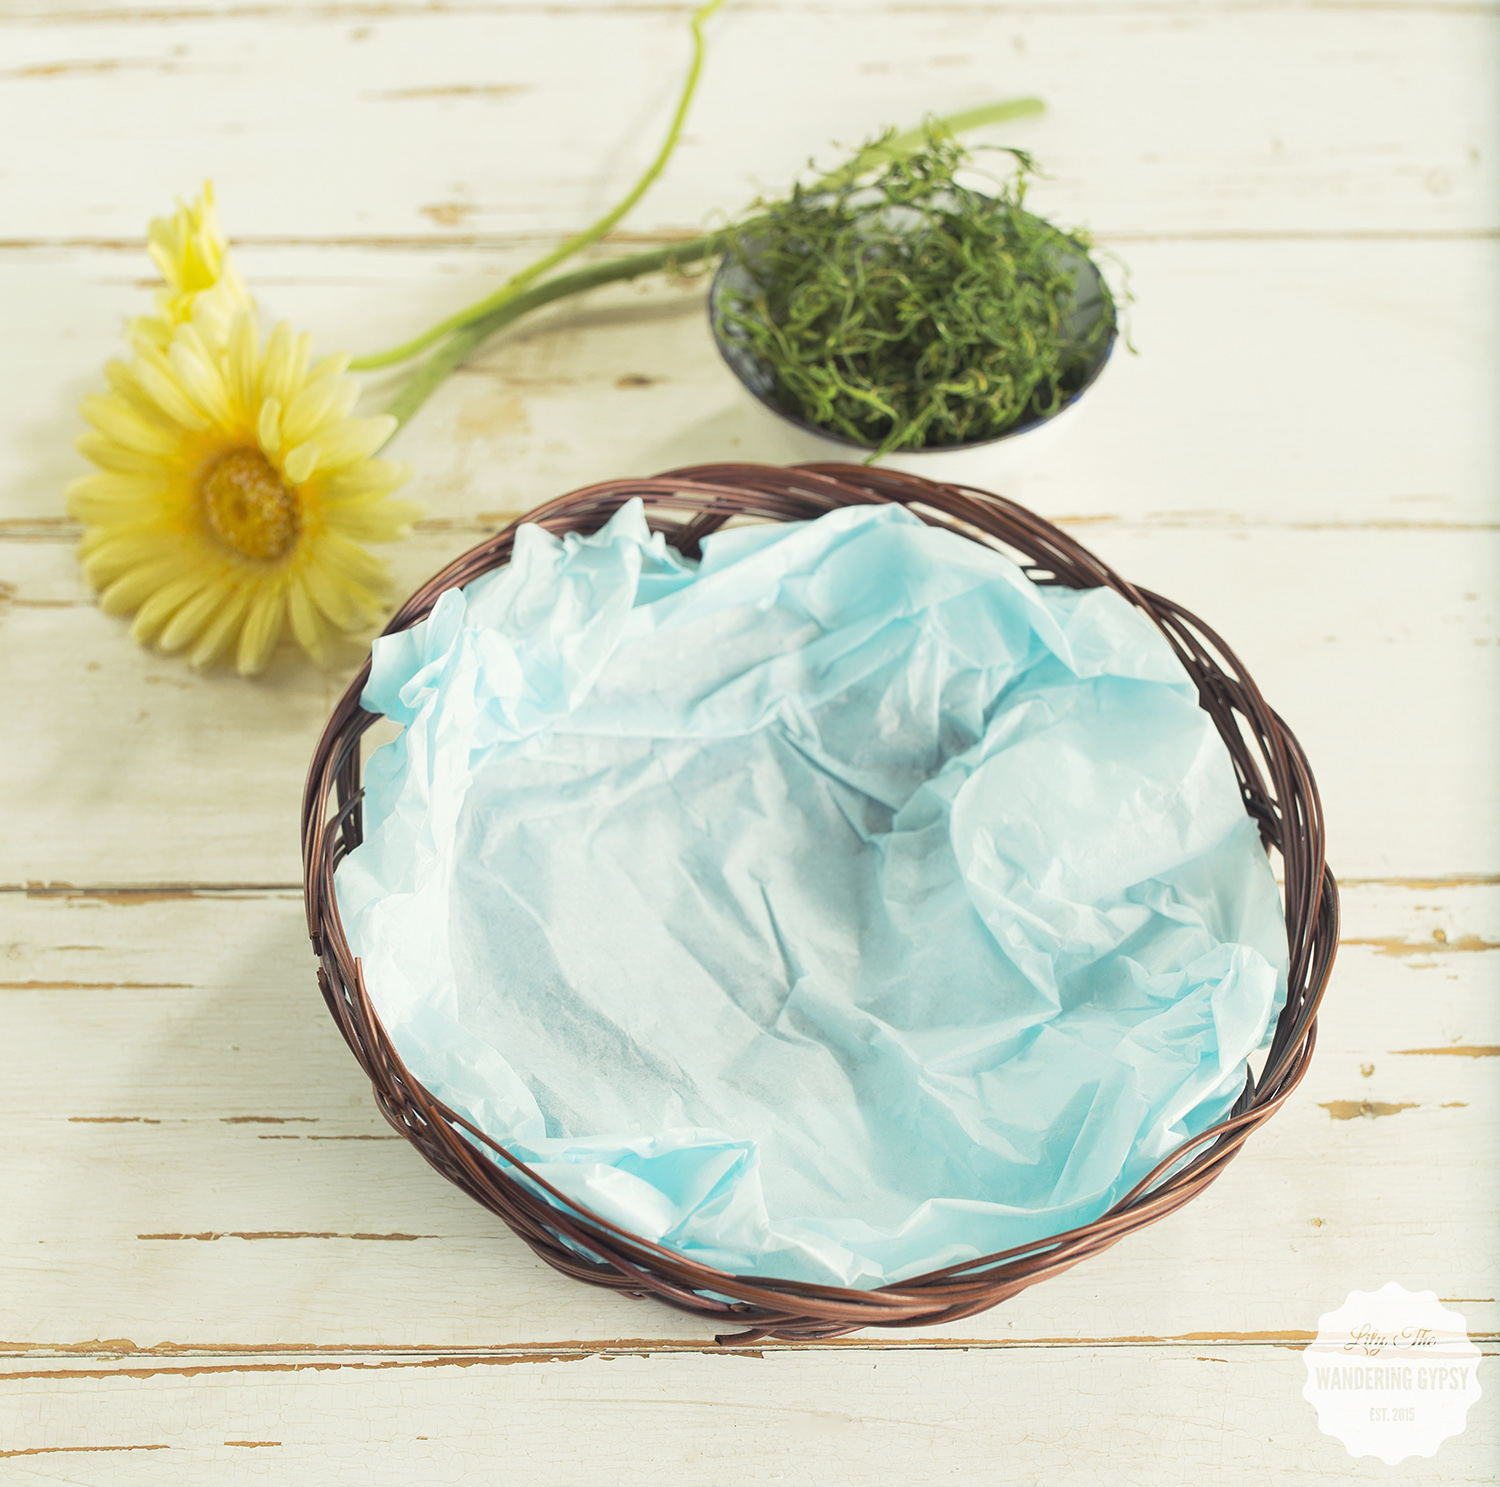 Lightly crumple up a piece of tissue paper and form it to the basket. This will ensure that the moss won't fall out.